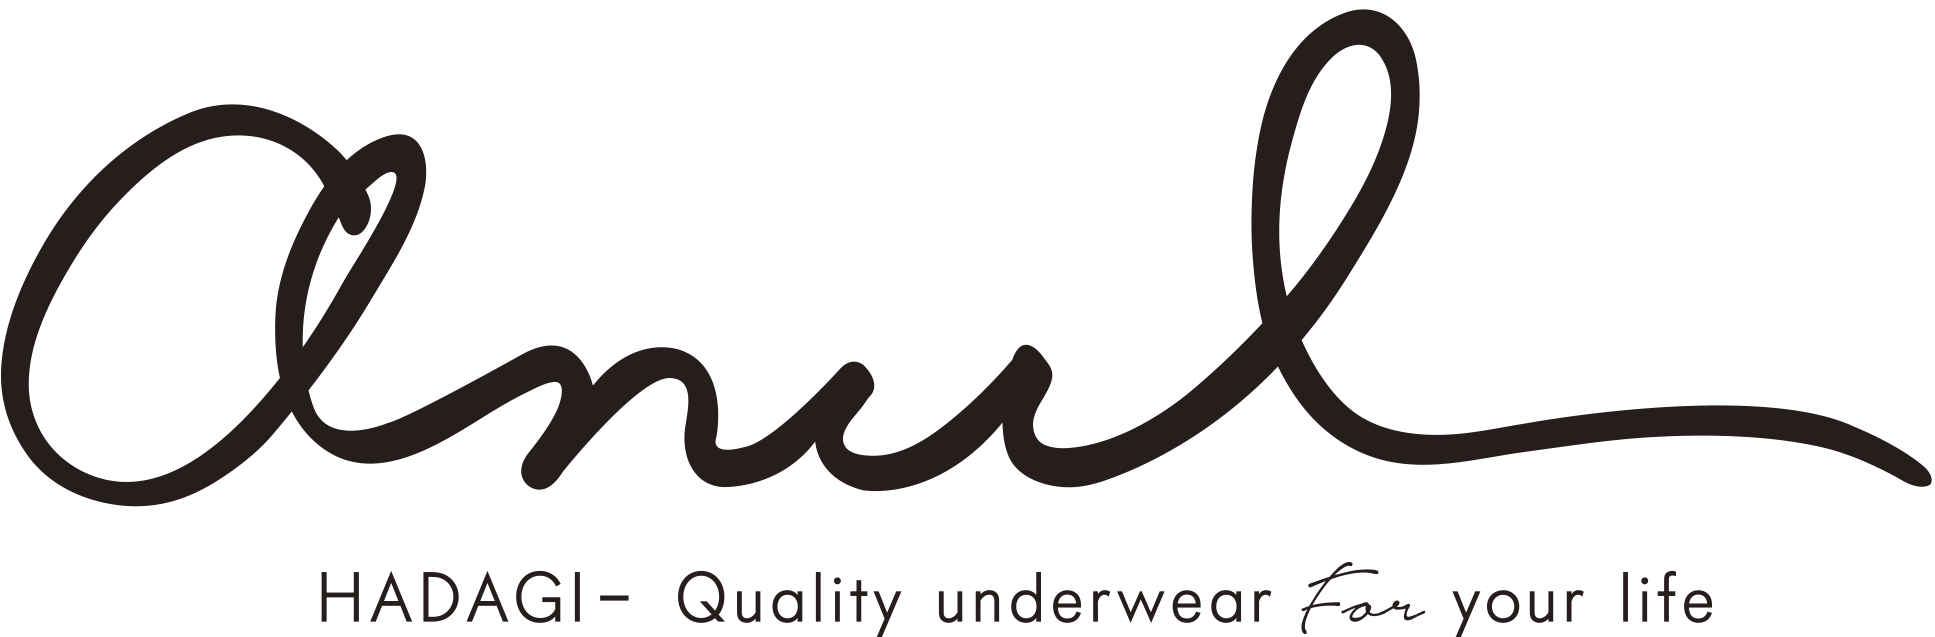 anul HADAGI - Quality underwear For your life